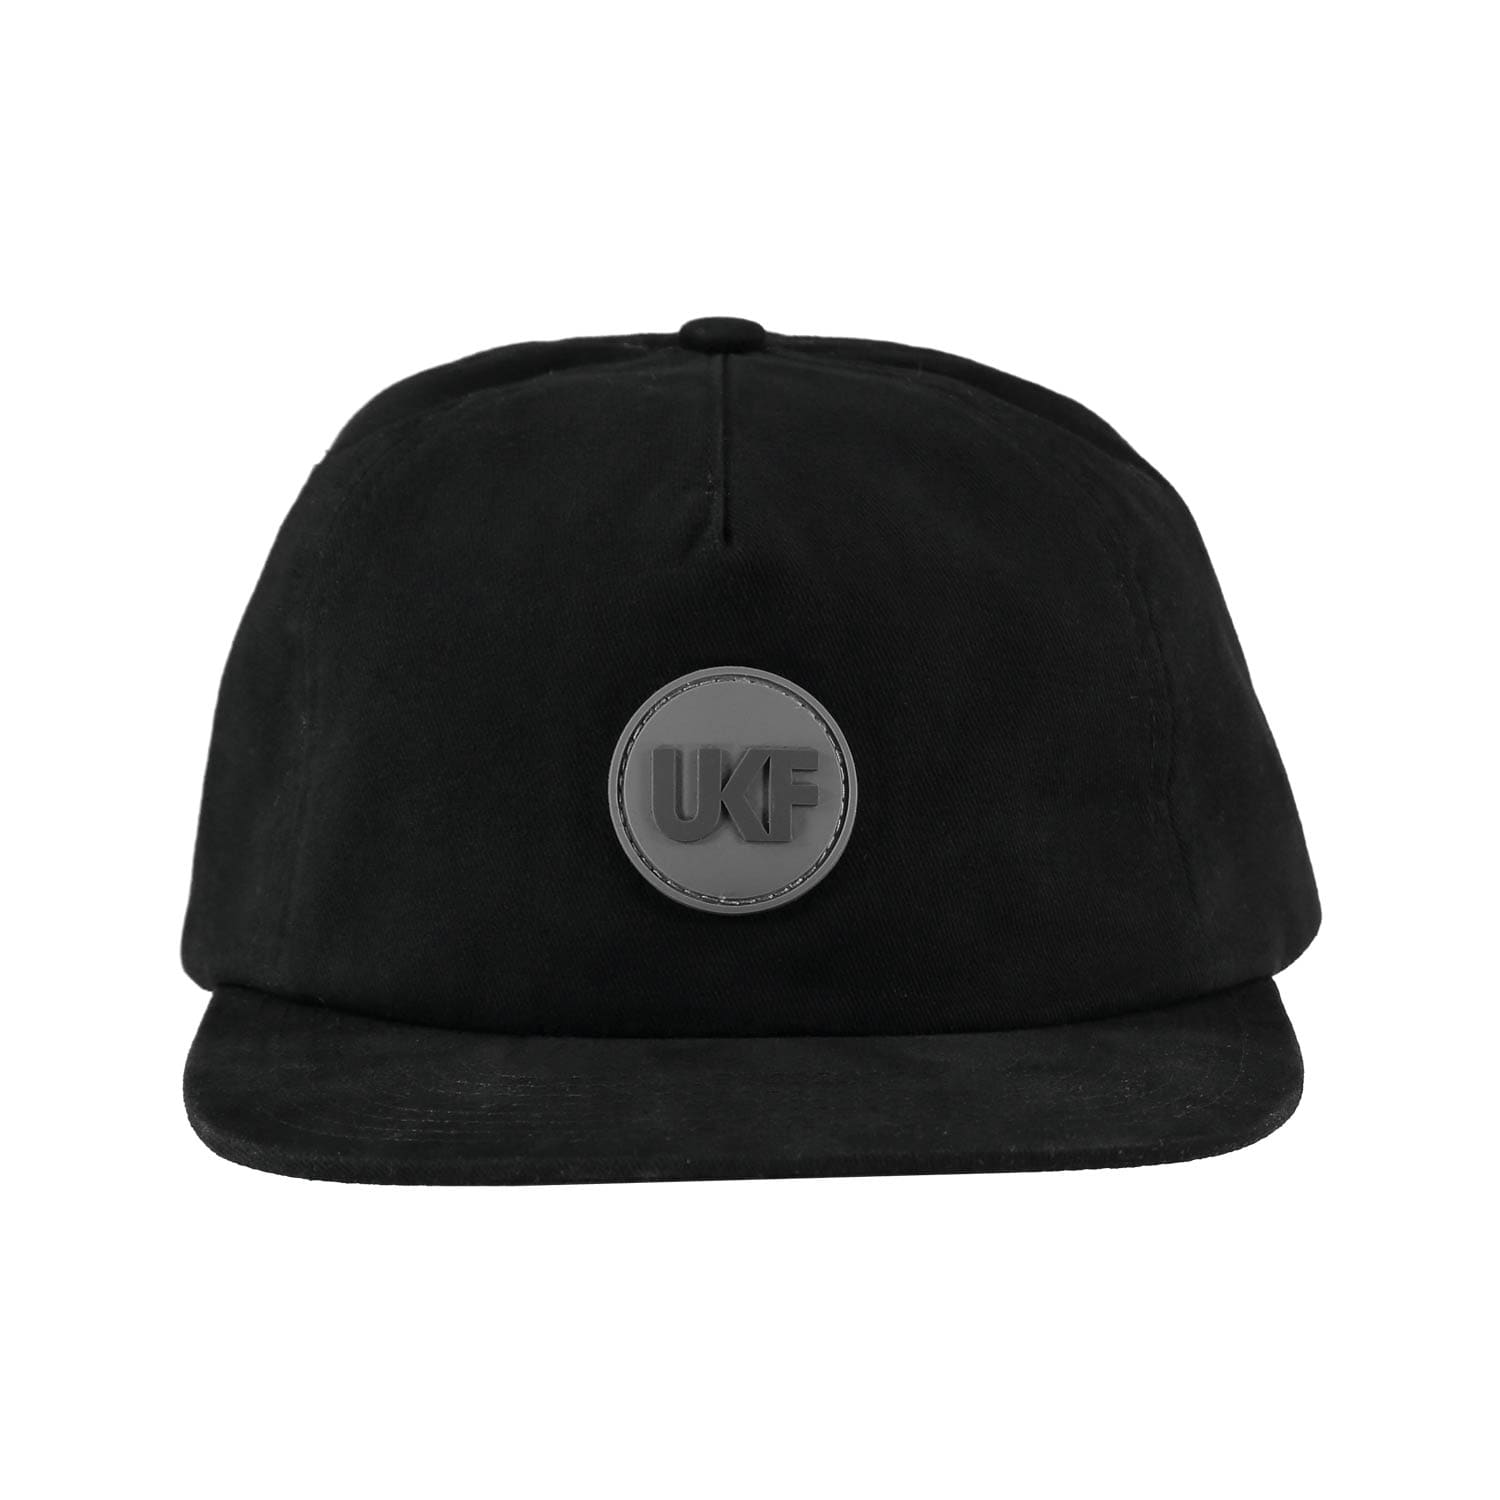 UKF Snapback in black